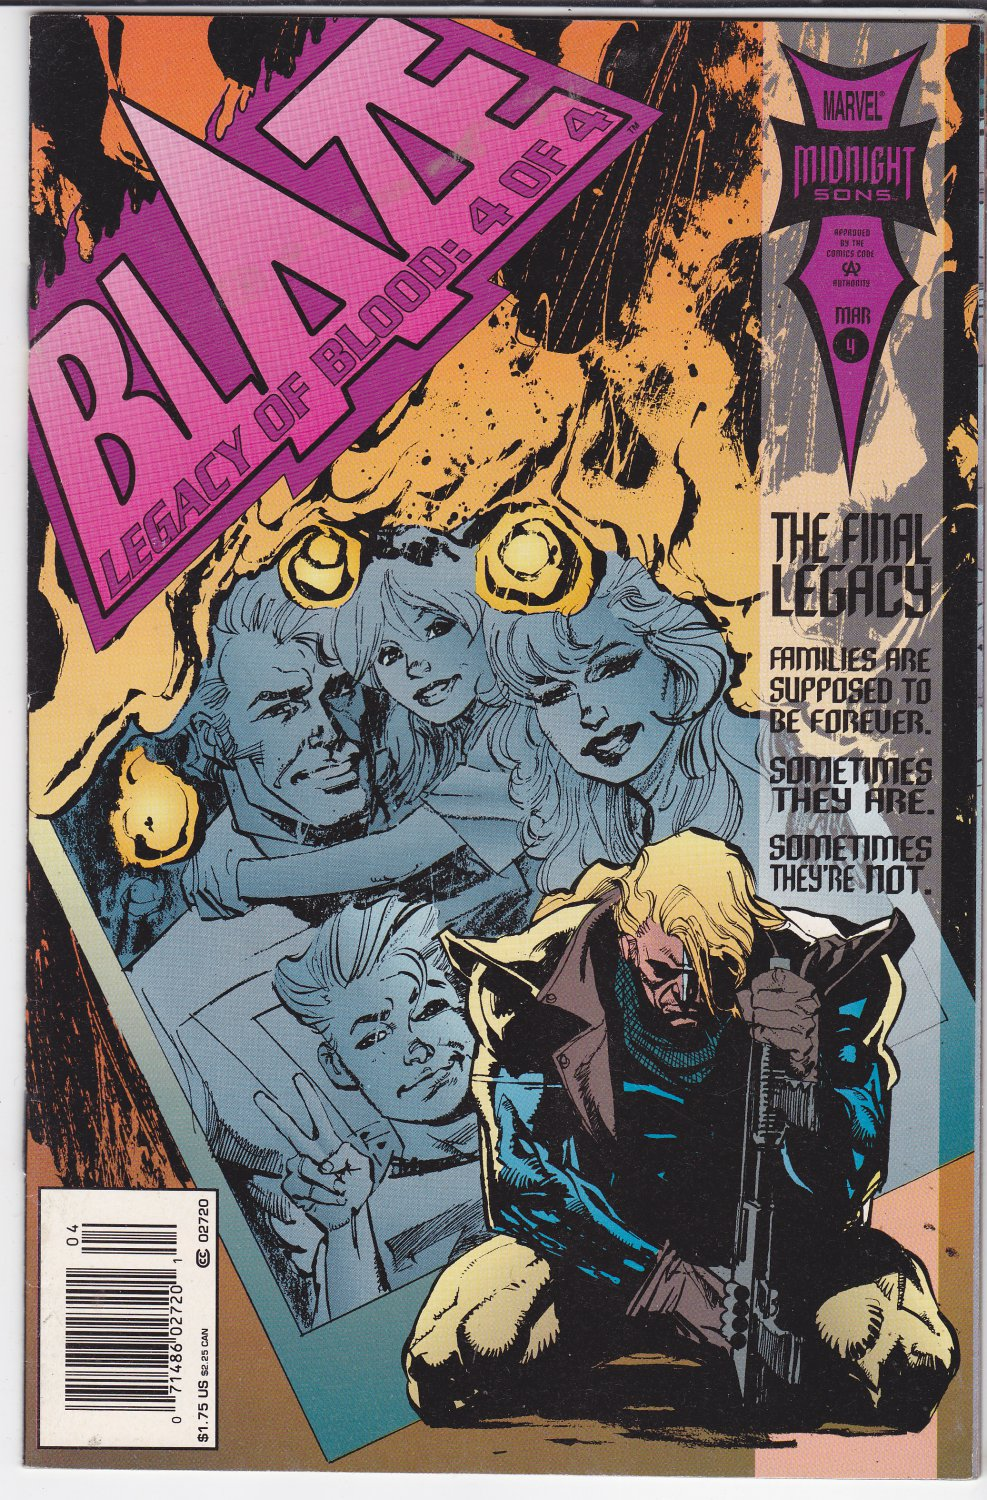 Blaze Legacy of Blood #4